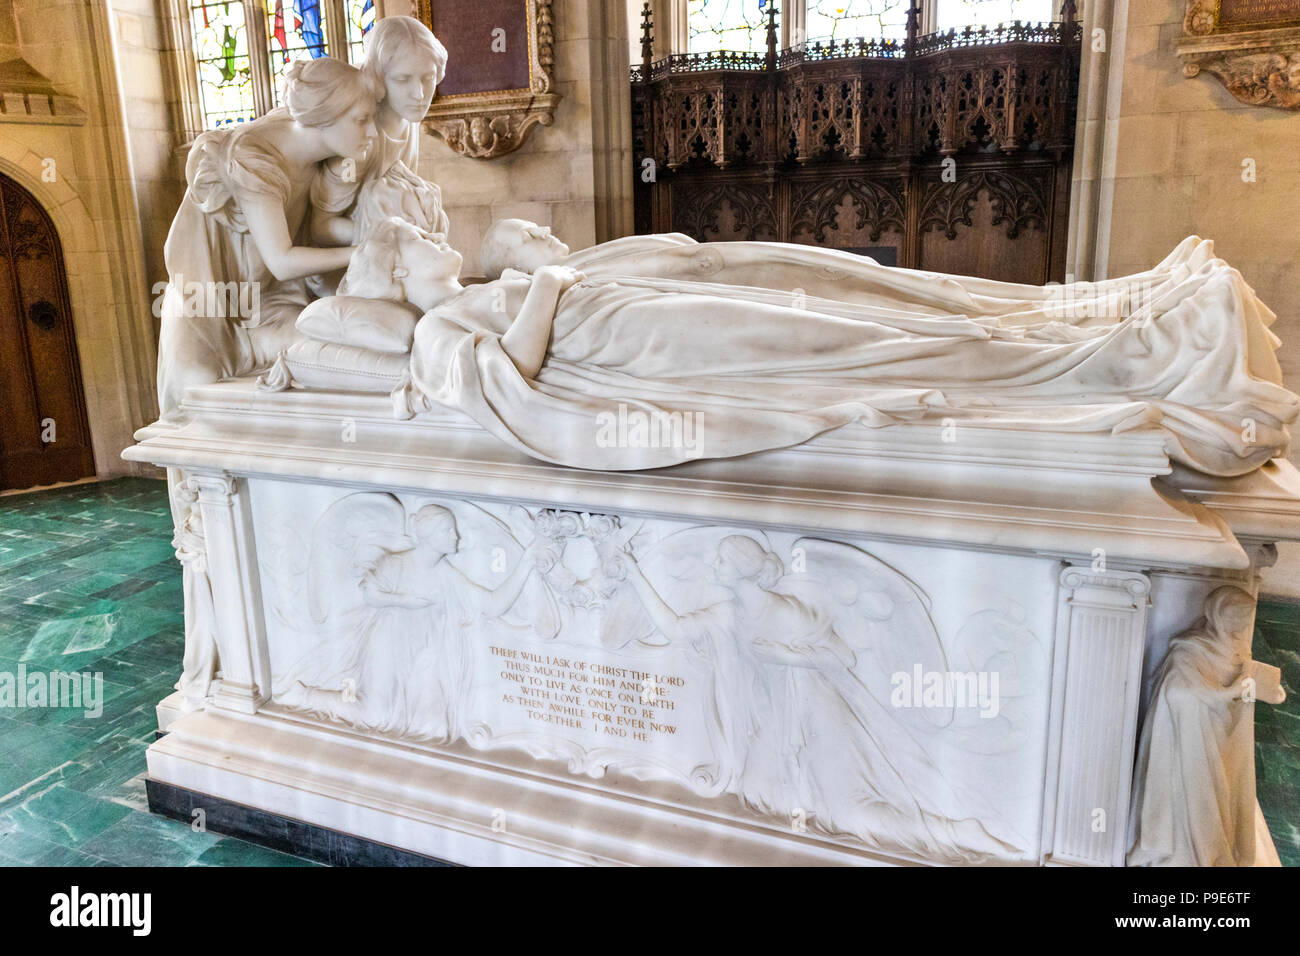 White marble tomb of 1st Marquess Curzon and his wife Mary designed by G F Bodley in 1906 in the church of All Saints at Kedleston, Derbyshire UK - Stock Image